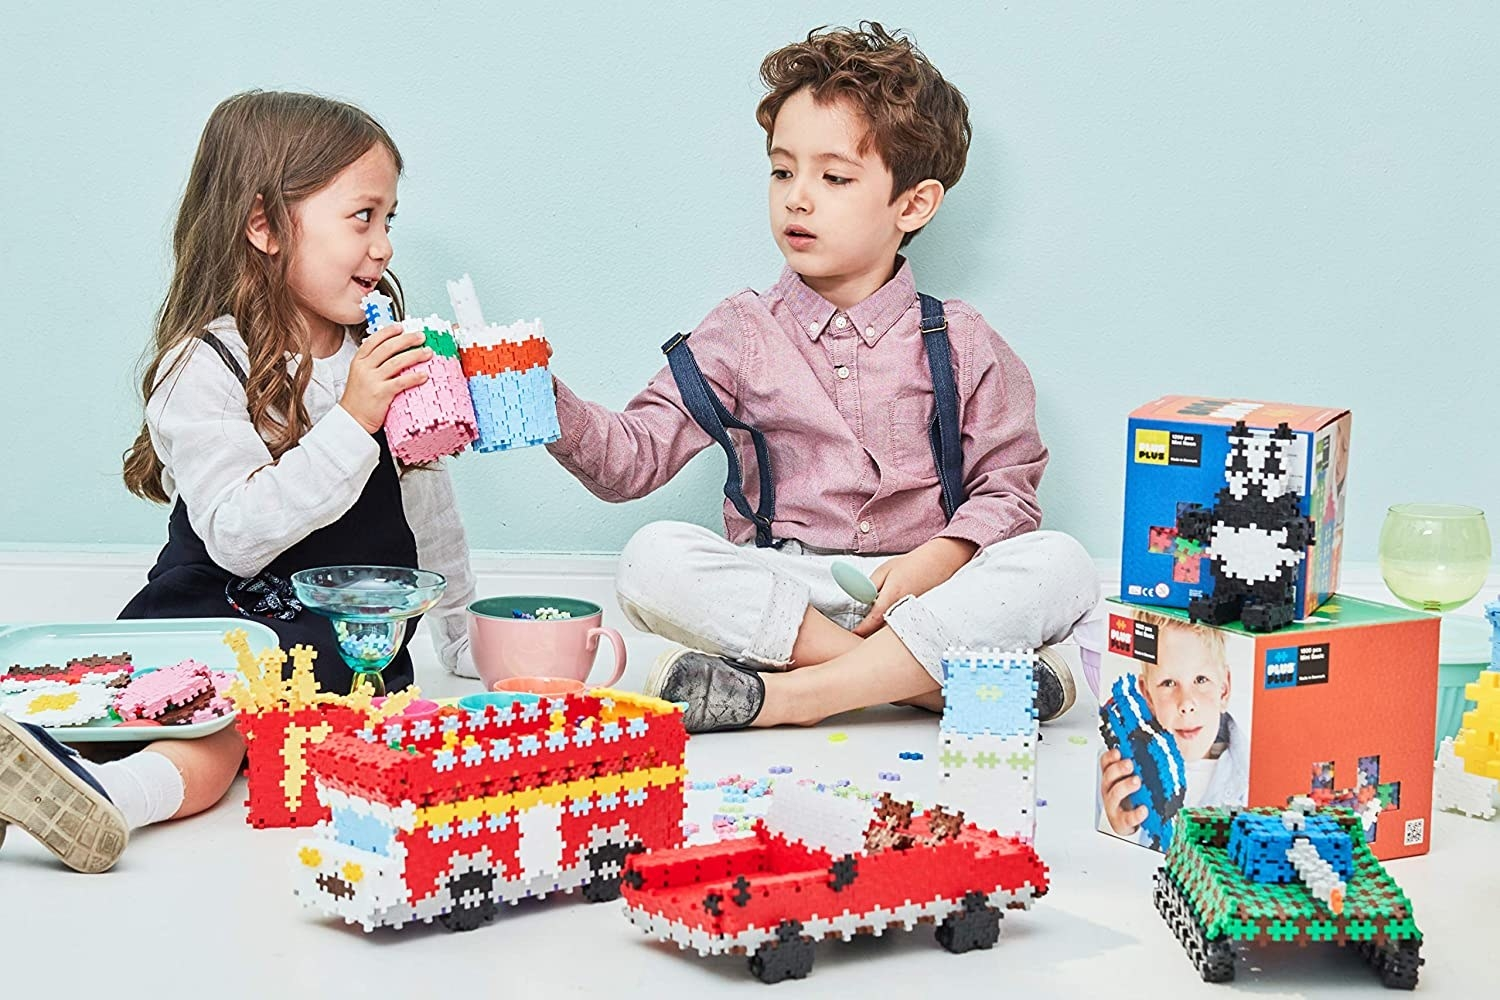 Two child models playing with vehicles and animals created with colorful puzzle blocks